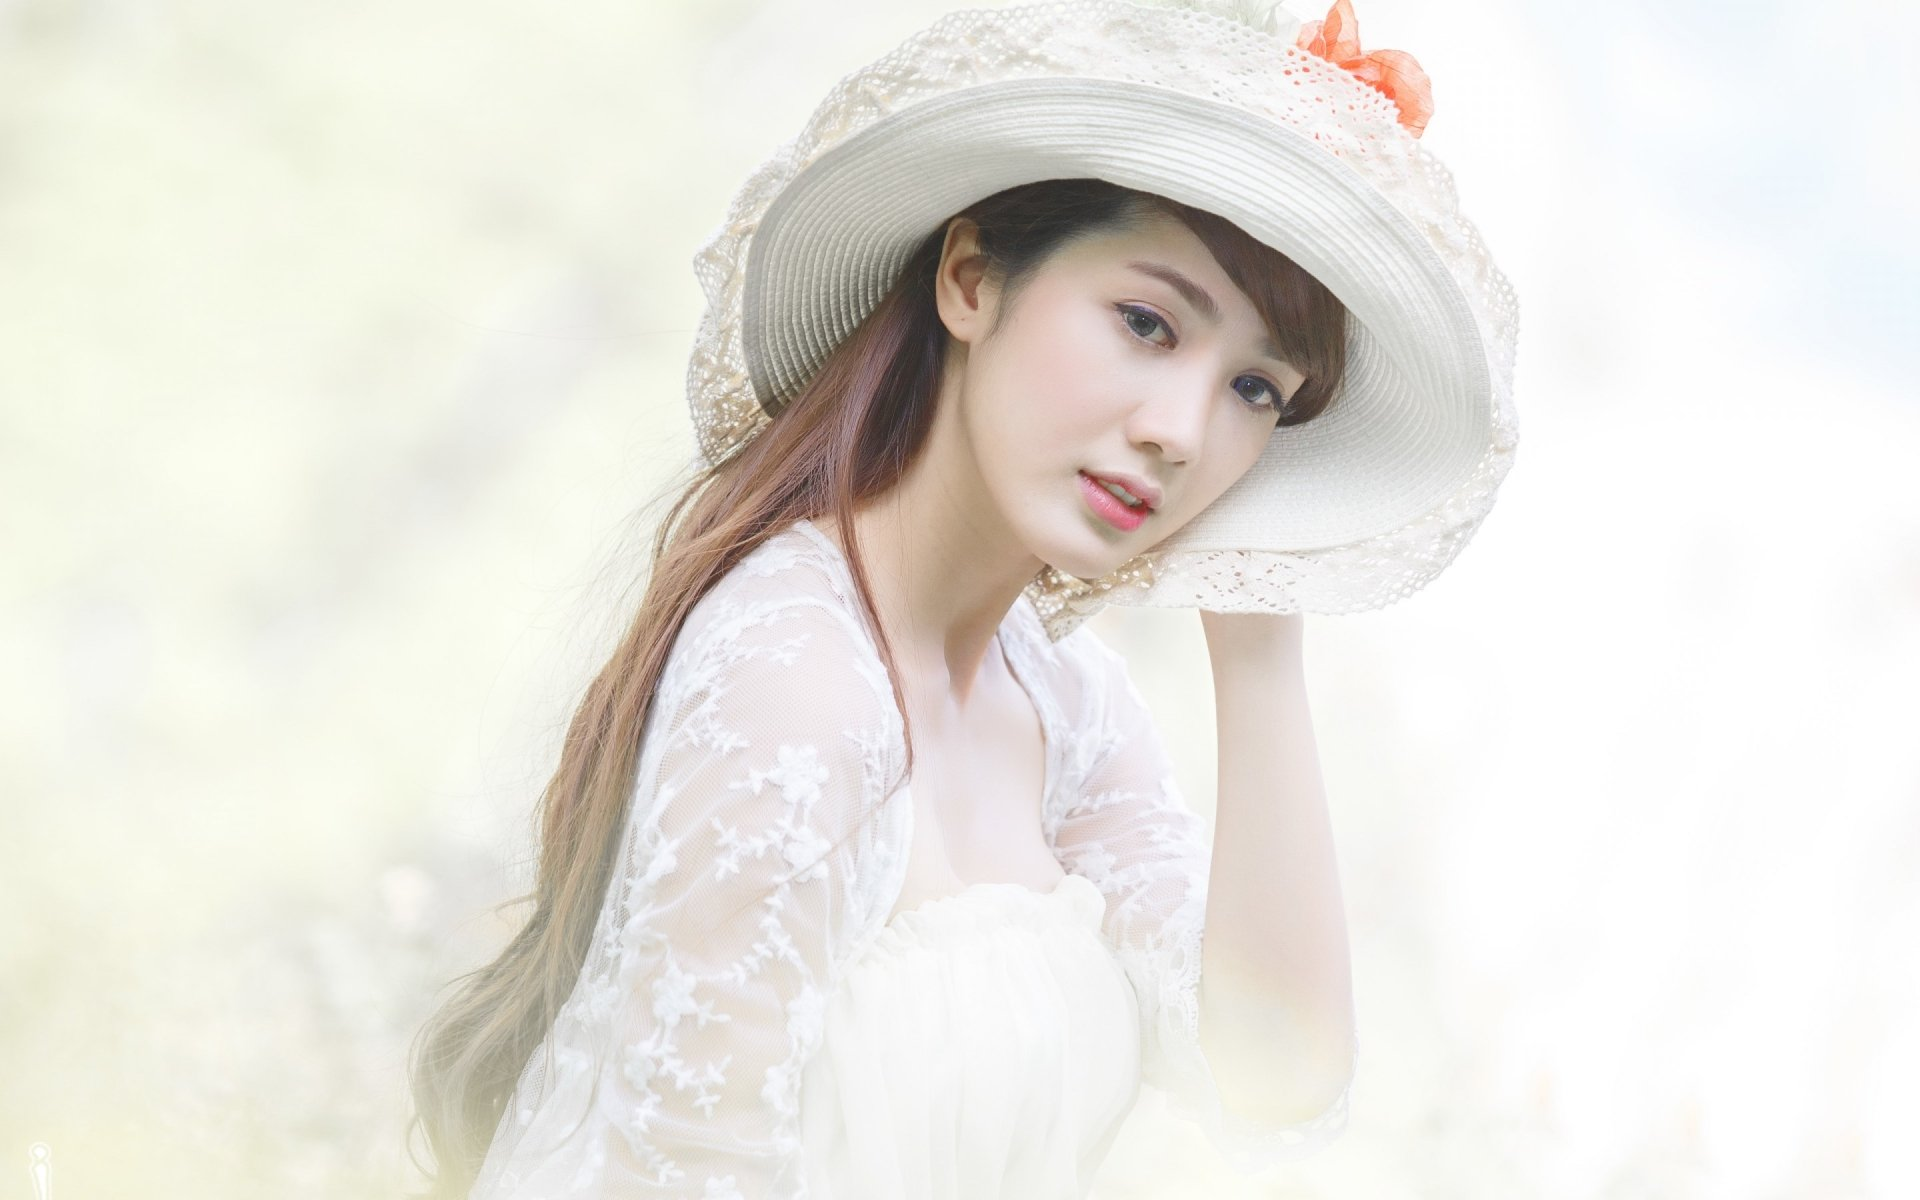 Wallpapers ID:419739